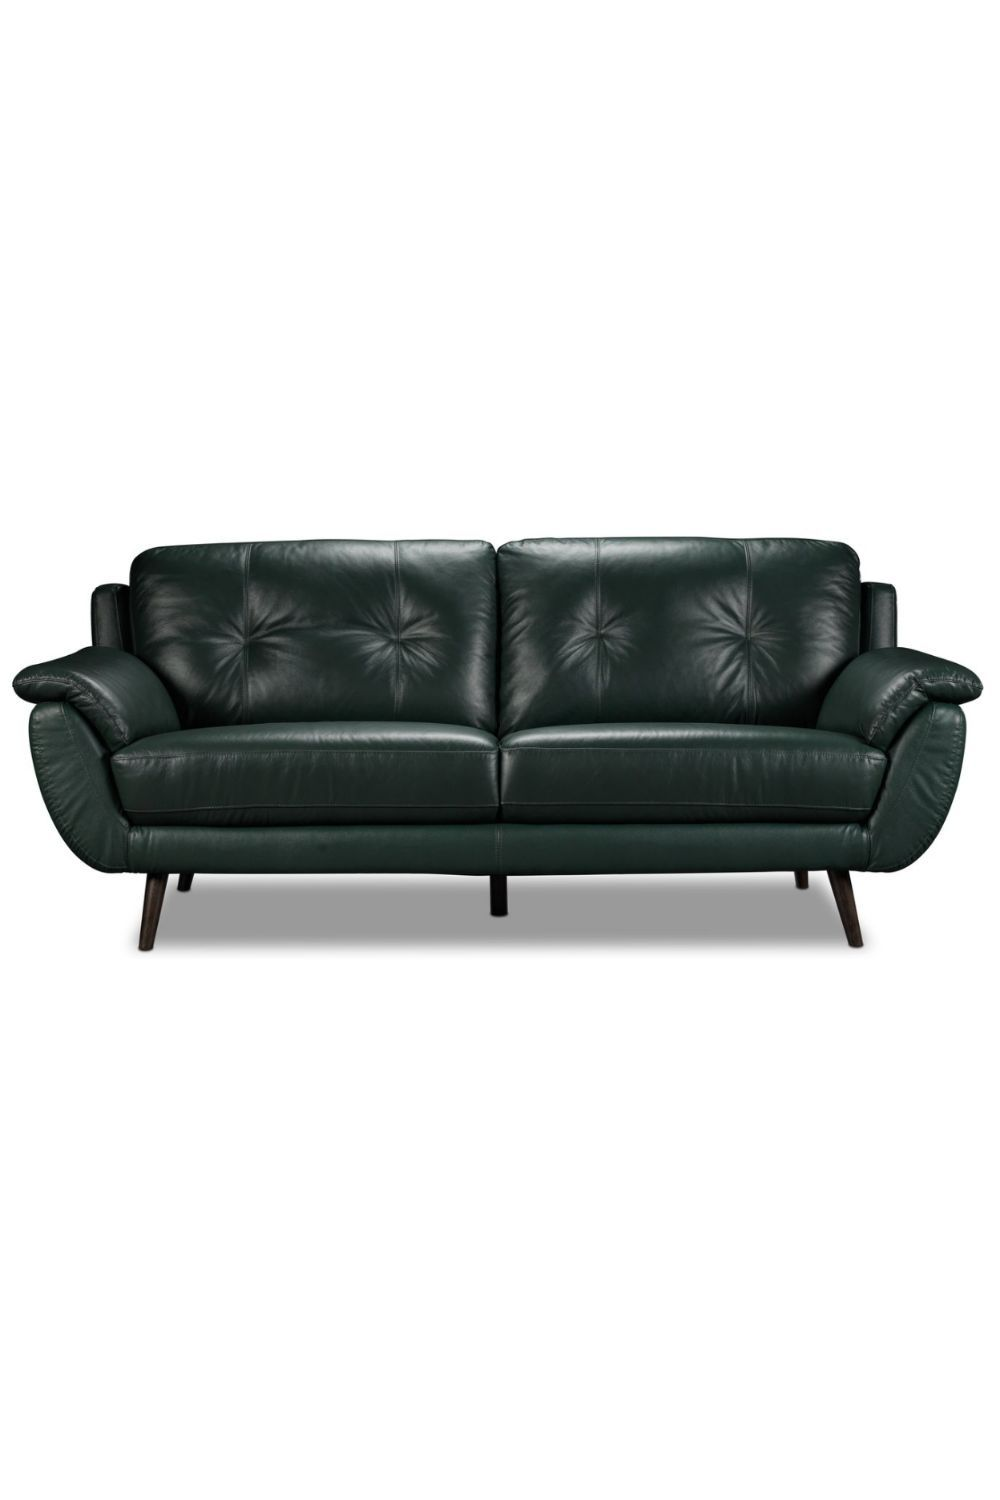 Kovner Sofa Green In 2020 Sofa Couch Sofas Couch